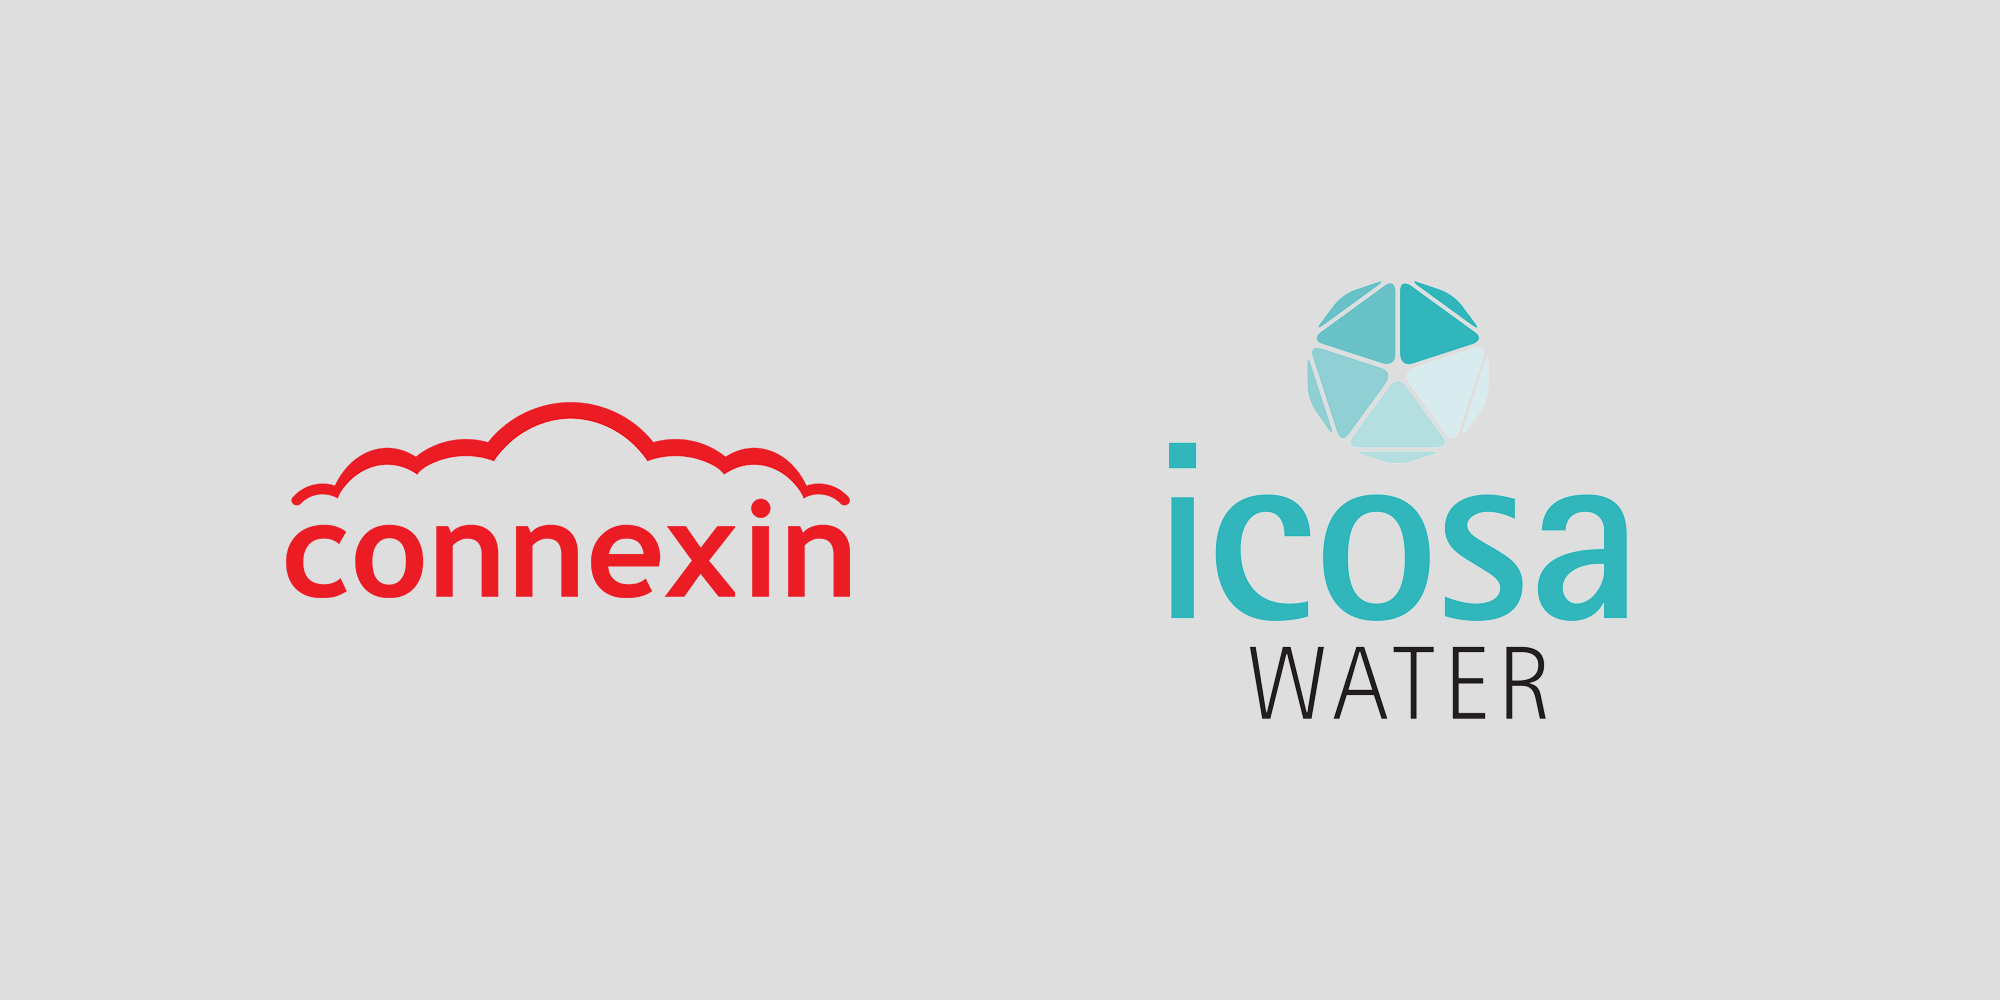 connexin-newsroom-icosa-connexin-partnership